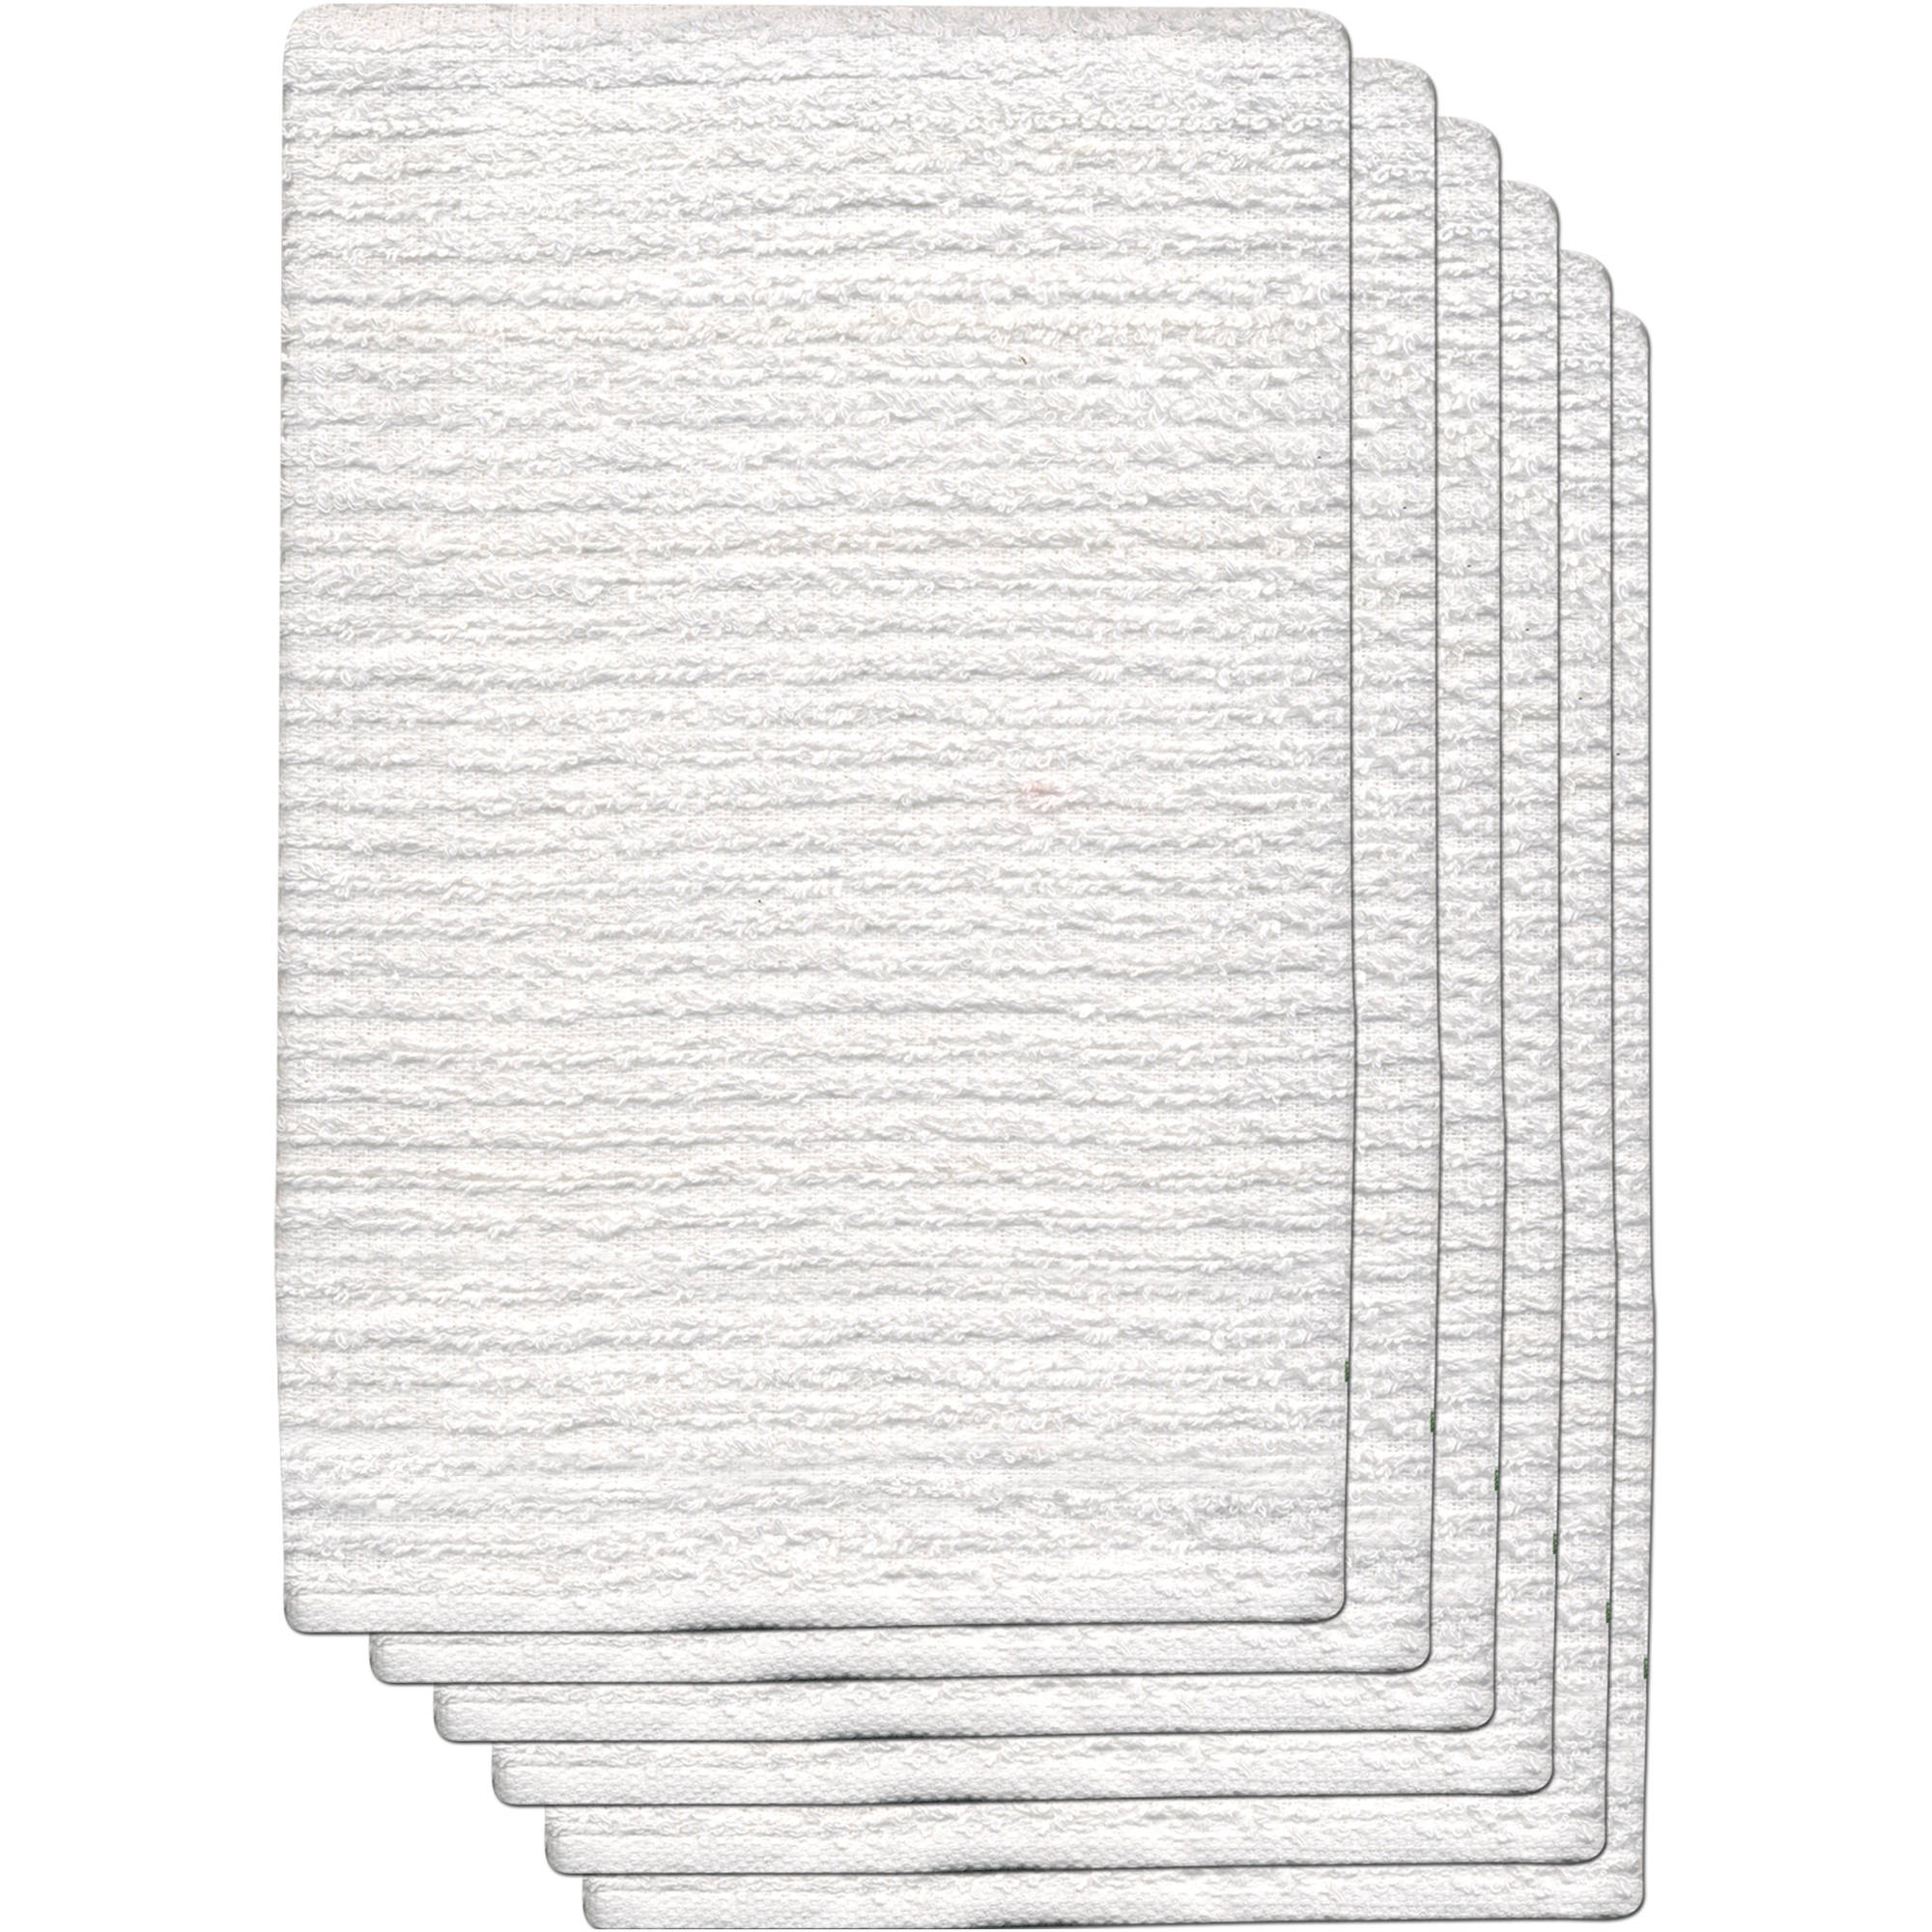 "GOURMET PRO 6-Pack Ribbed Barmop 16"" x 19"" 100 Percent Cotton Terry Barmop Utility Towel"